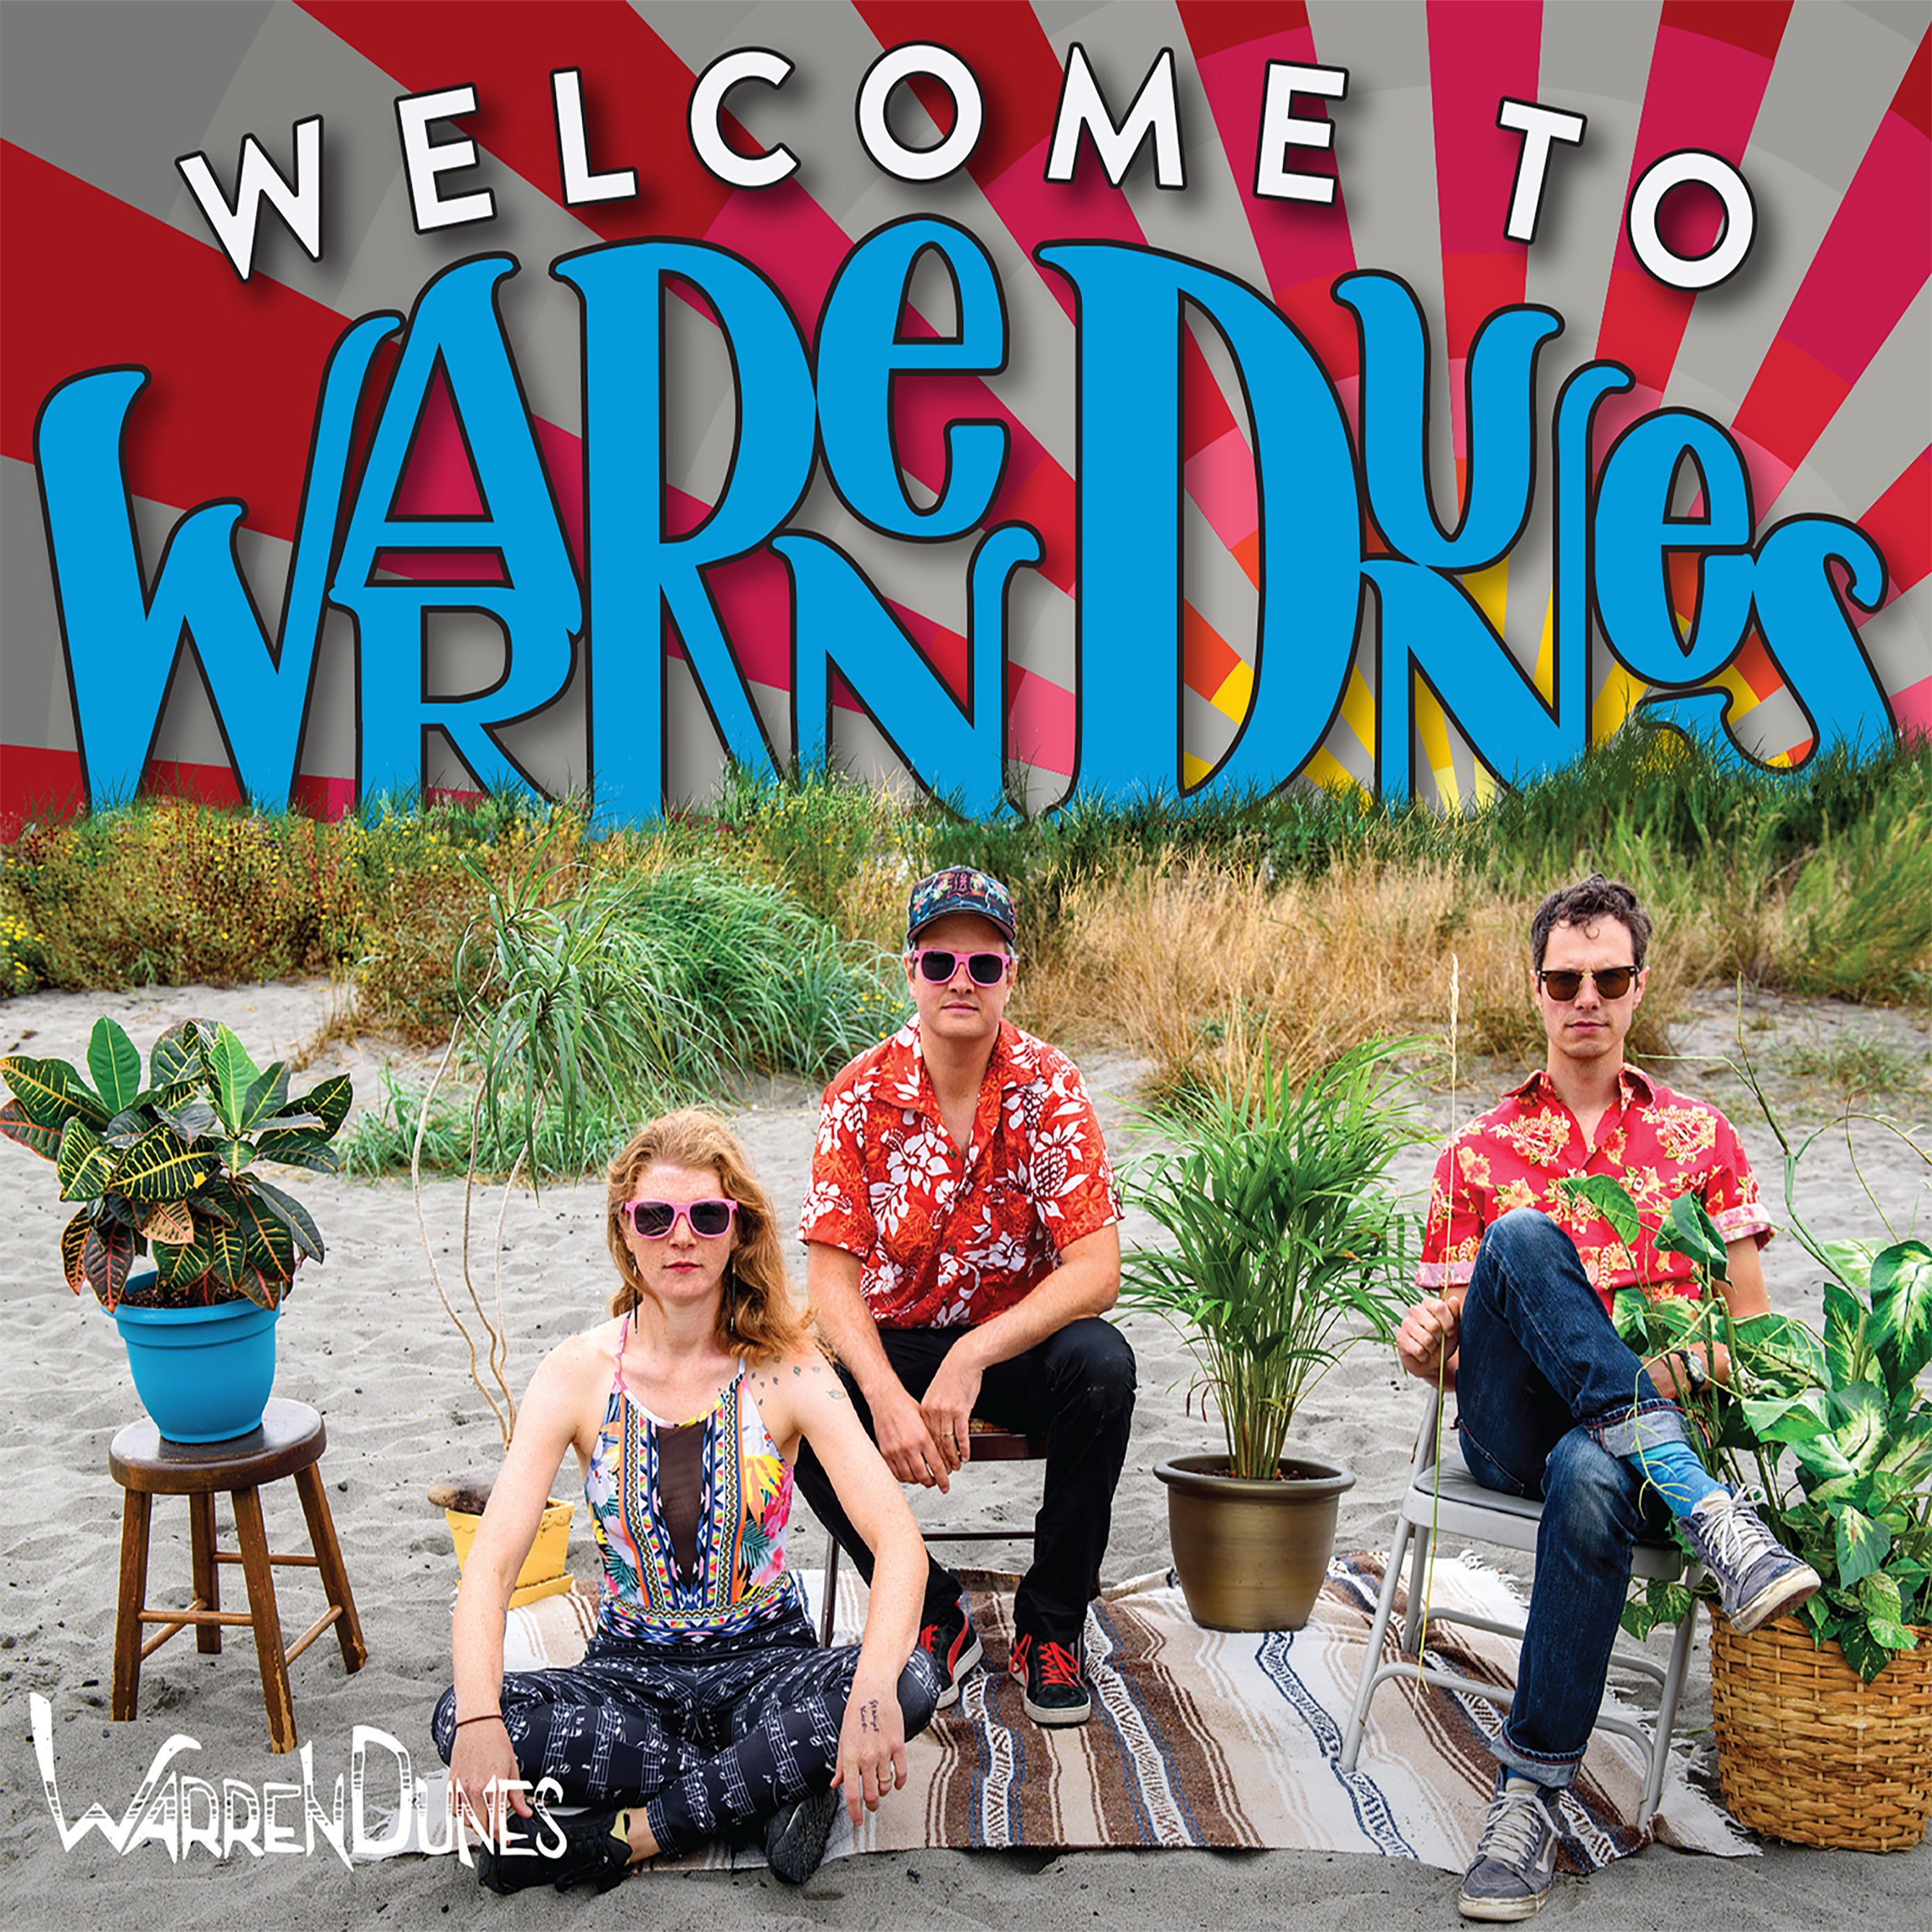 WelcometoWarrenDunes_March2_2019_AlbumCover(1500X1500).jpg